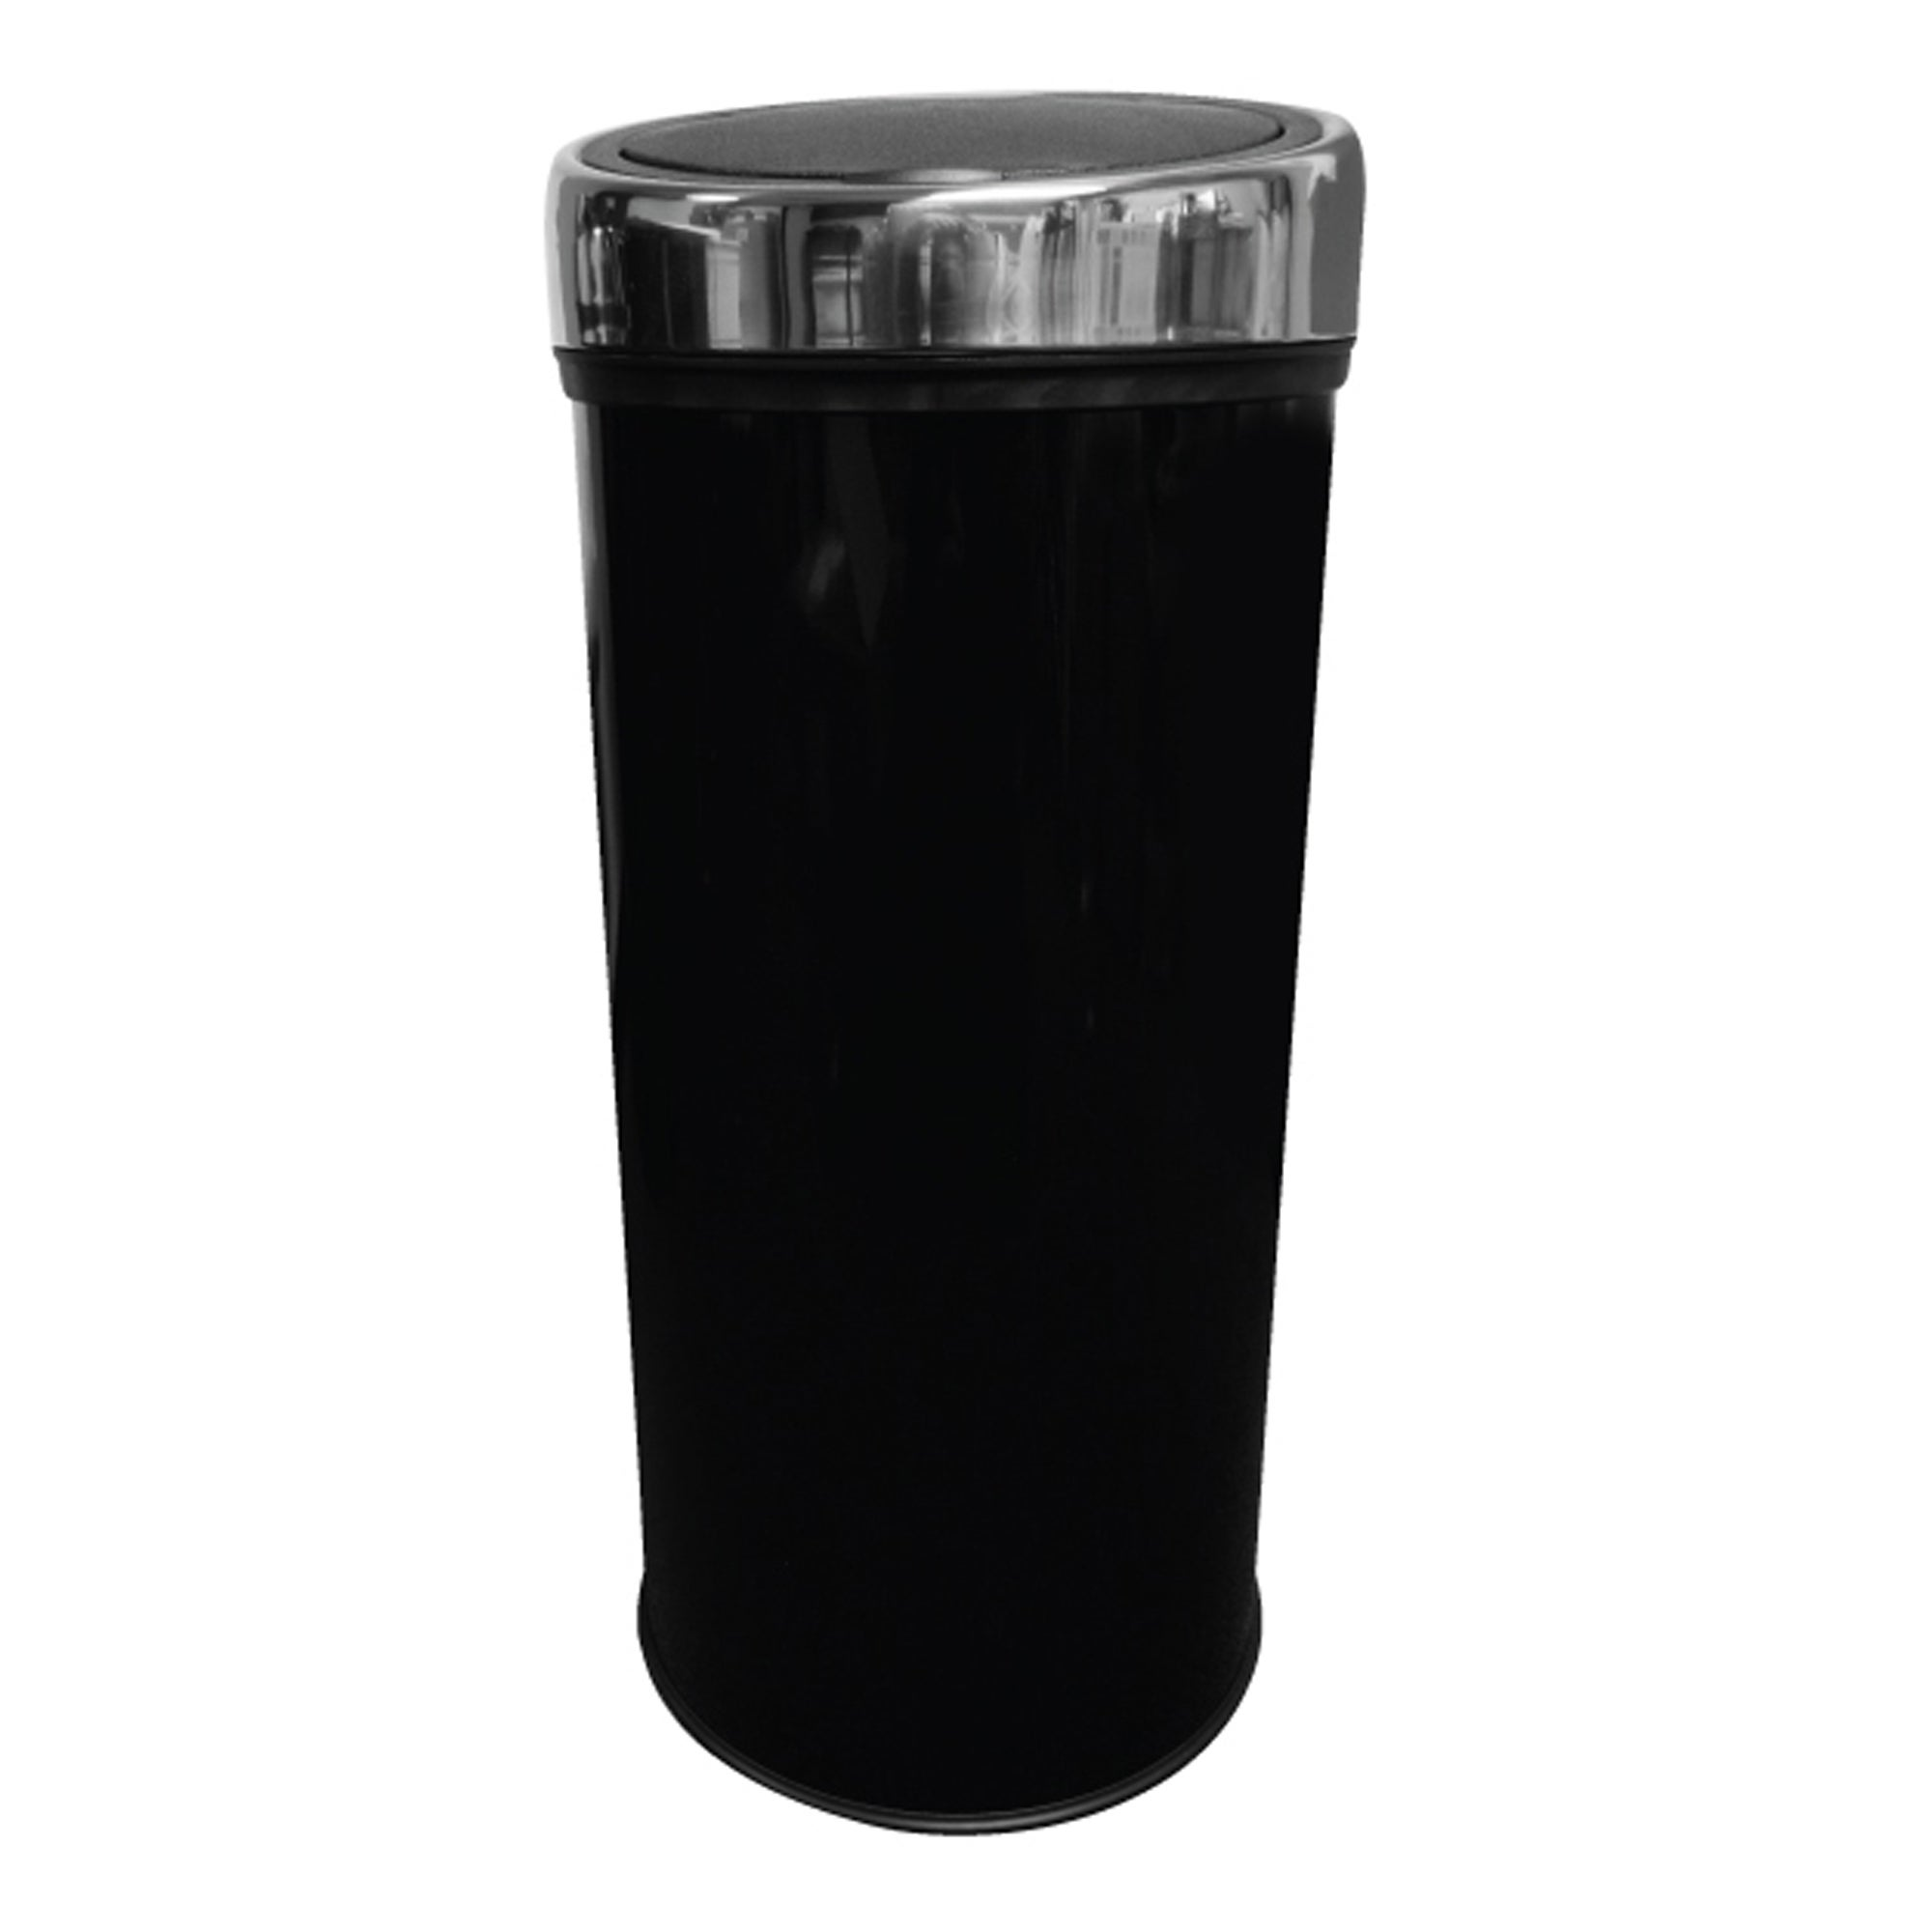 Black Spectrum Collection 30 Litre Press Top Bin